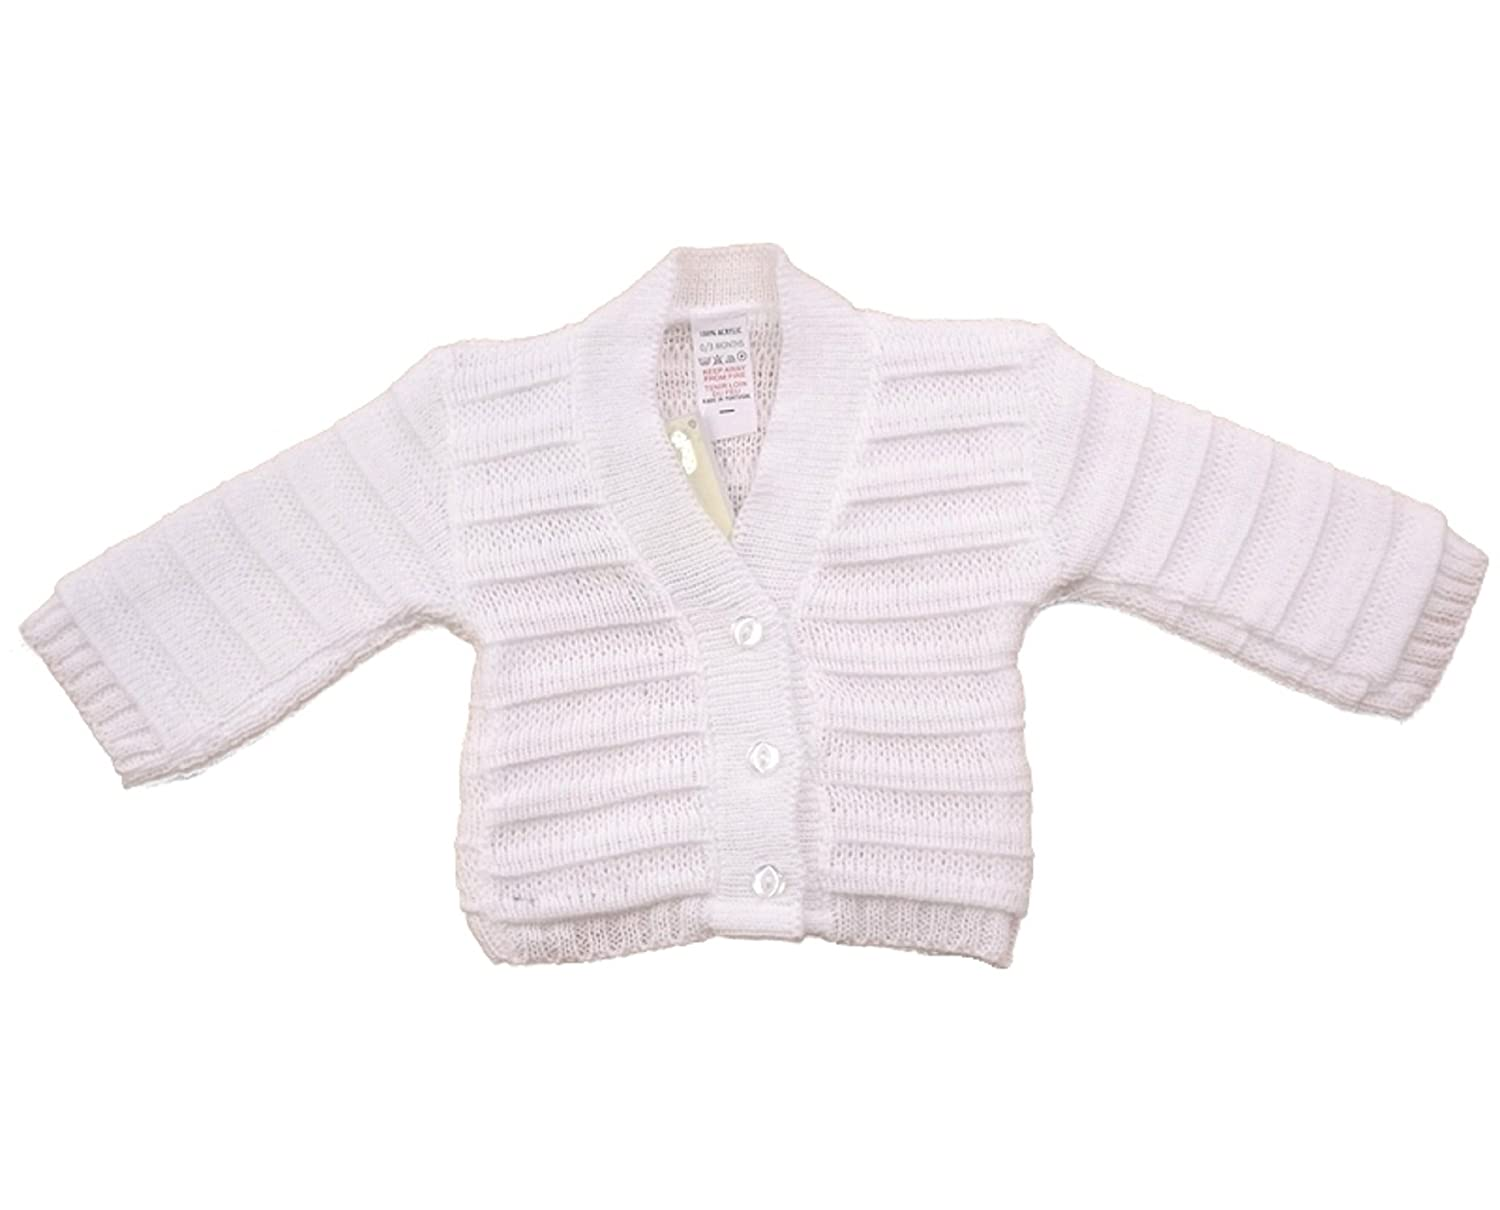 c29aaa05d3c1 Baby Girls Boys Knitted Cardigan 0-12 Months Pink White Sky Blue (6 ...